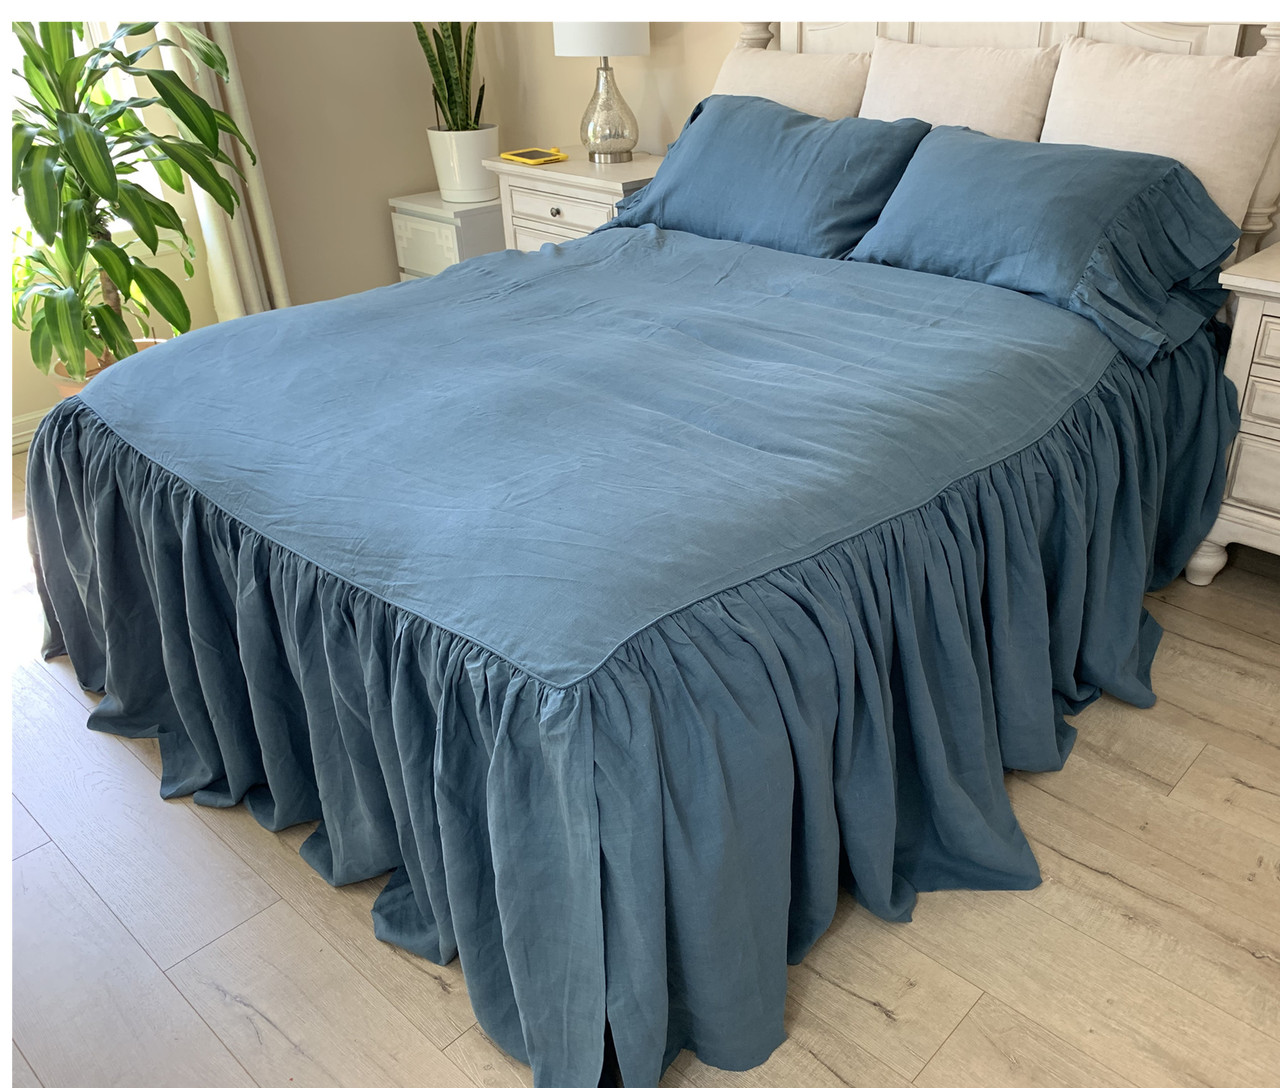 Dark Linen Bed Cover Luxury Bedding Handcrafted By Superior Custom Linens